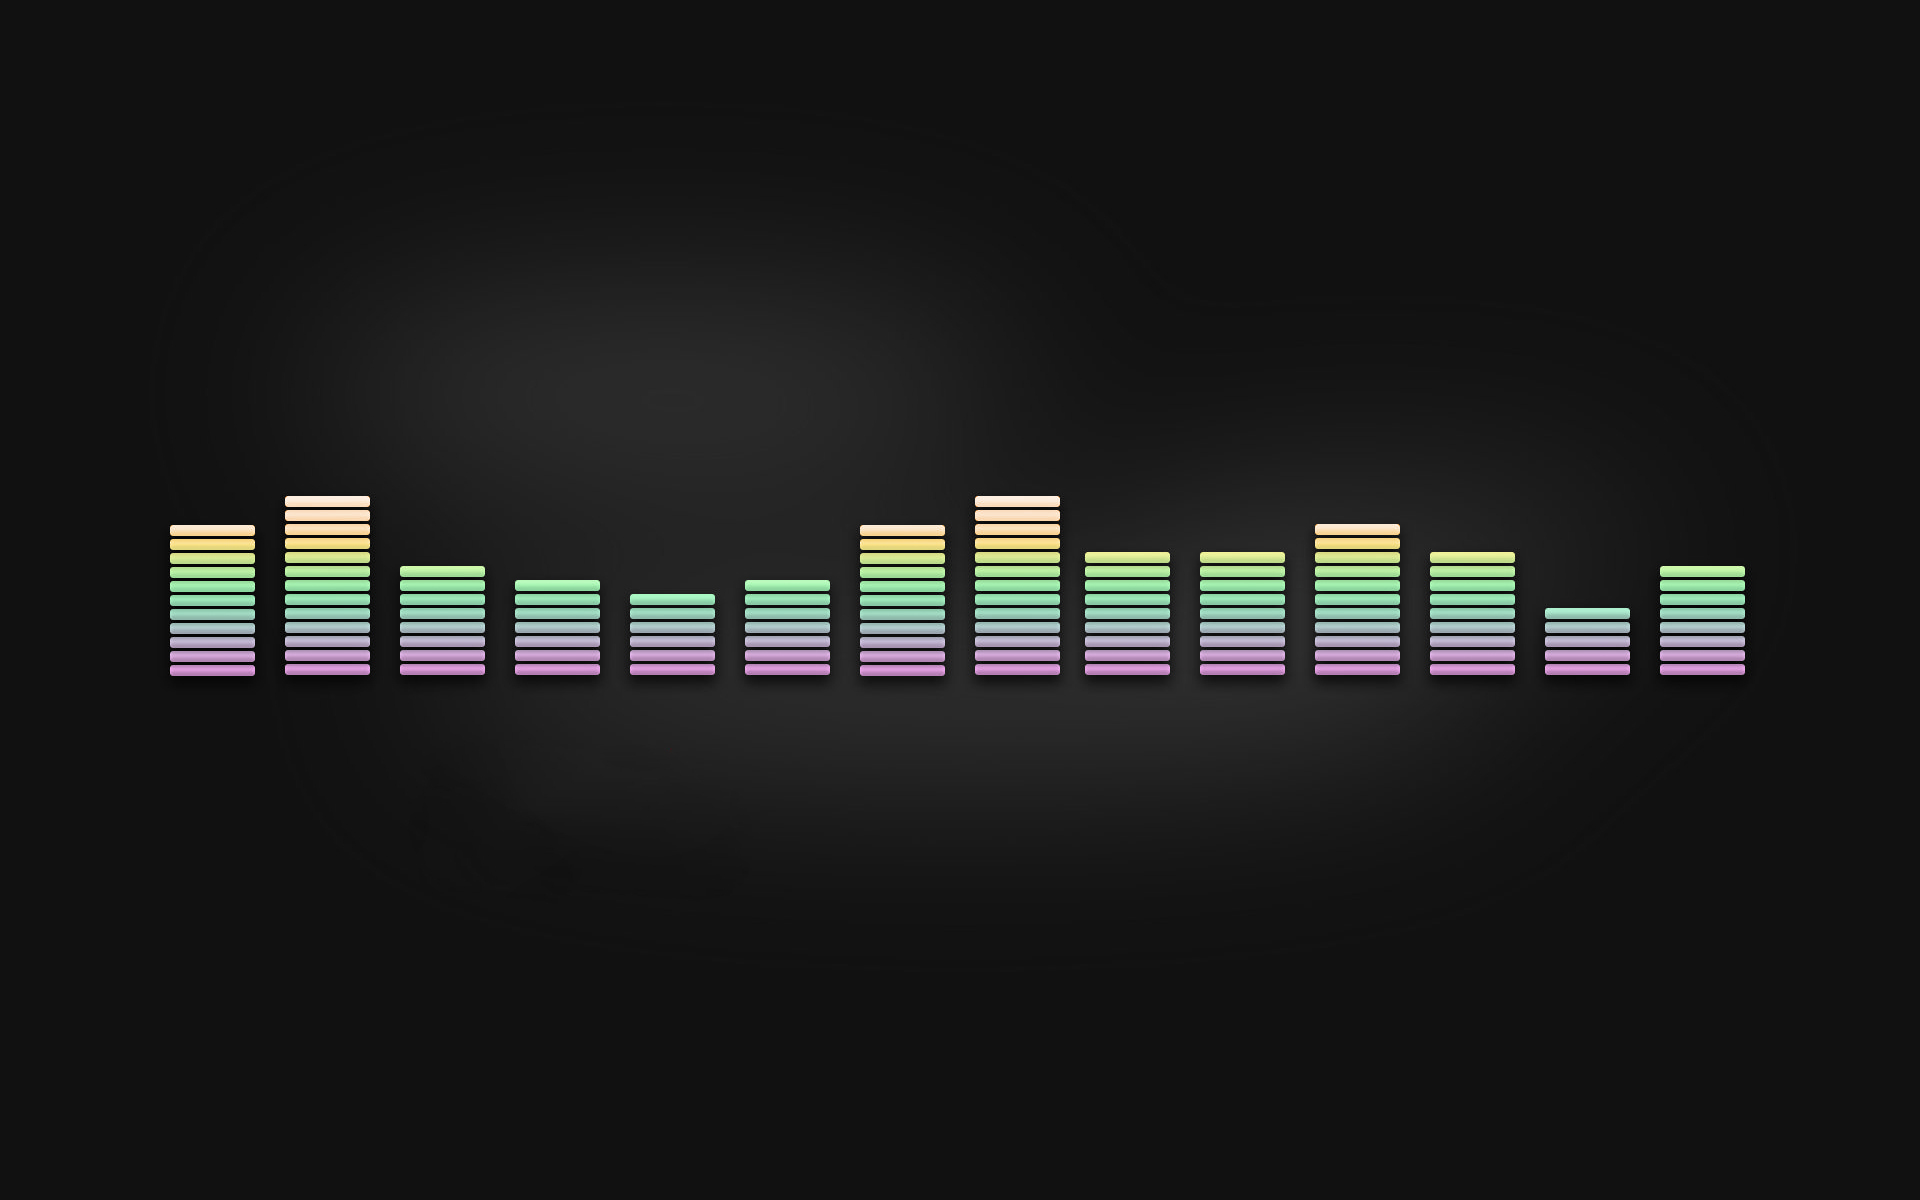 colorful equalizer wallpaper 47340 1920x1200 px